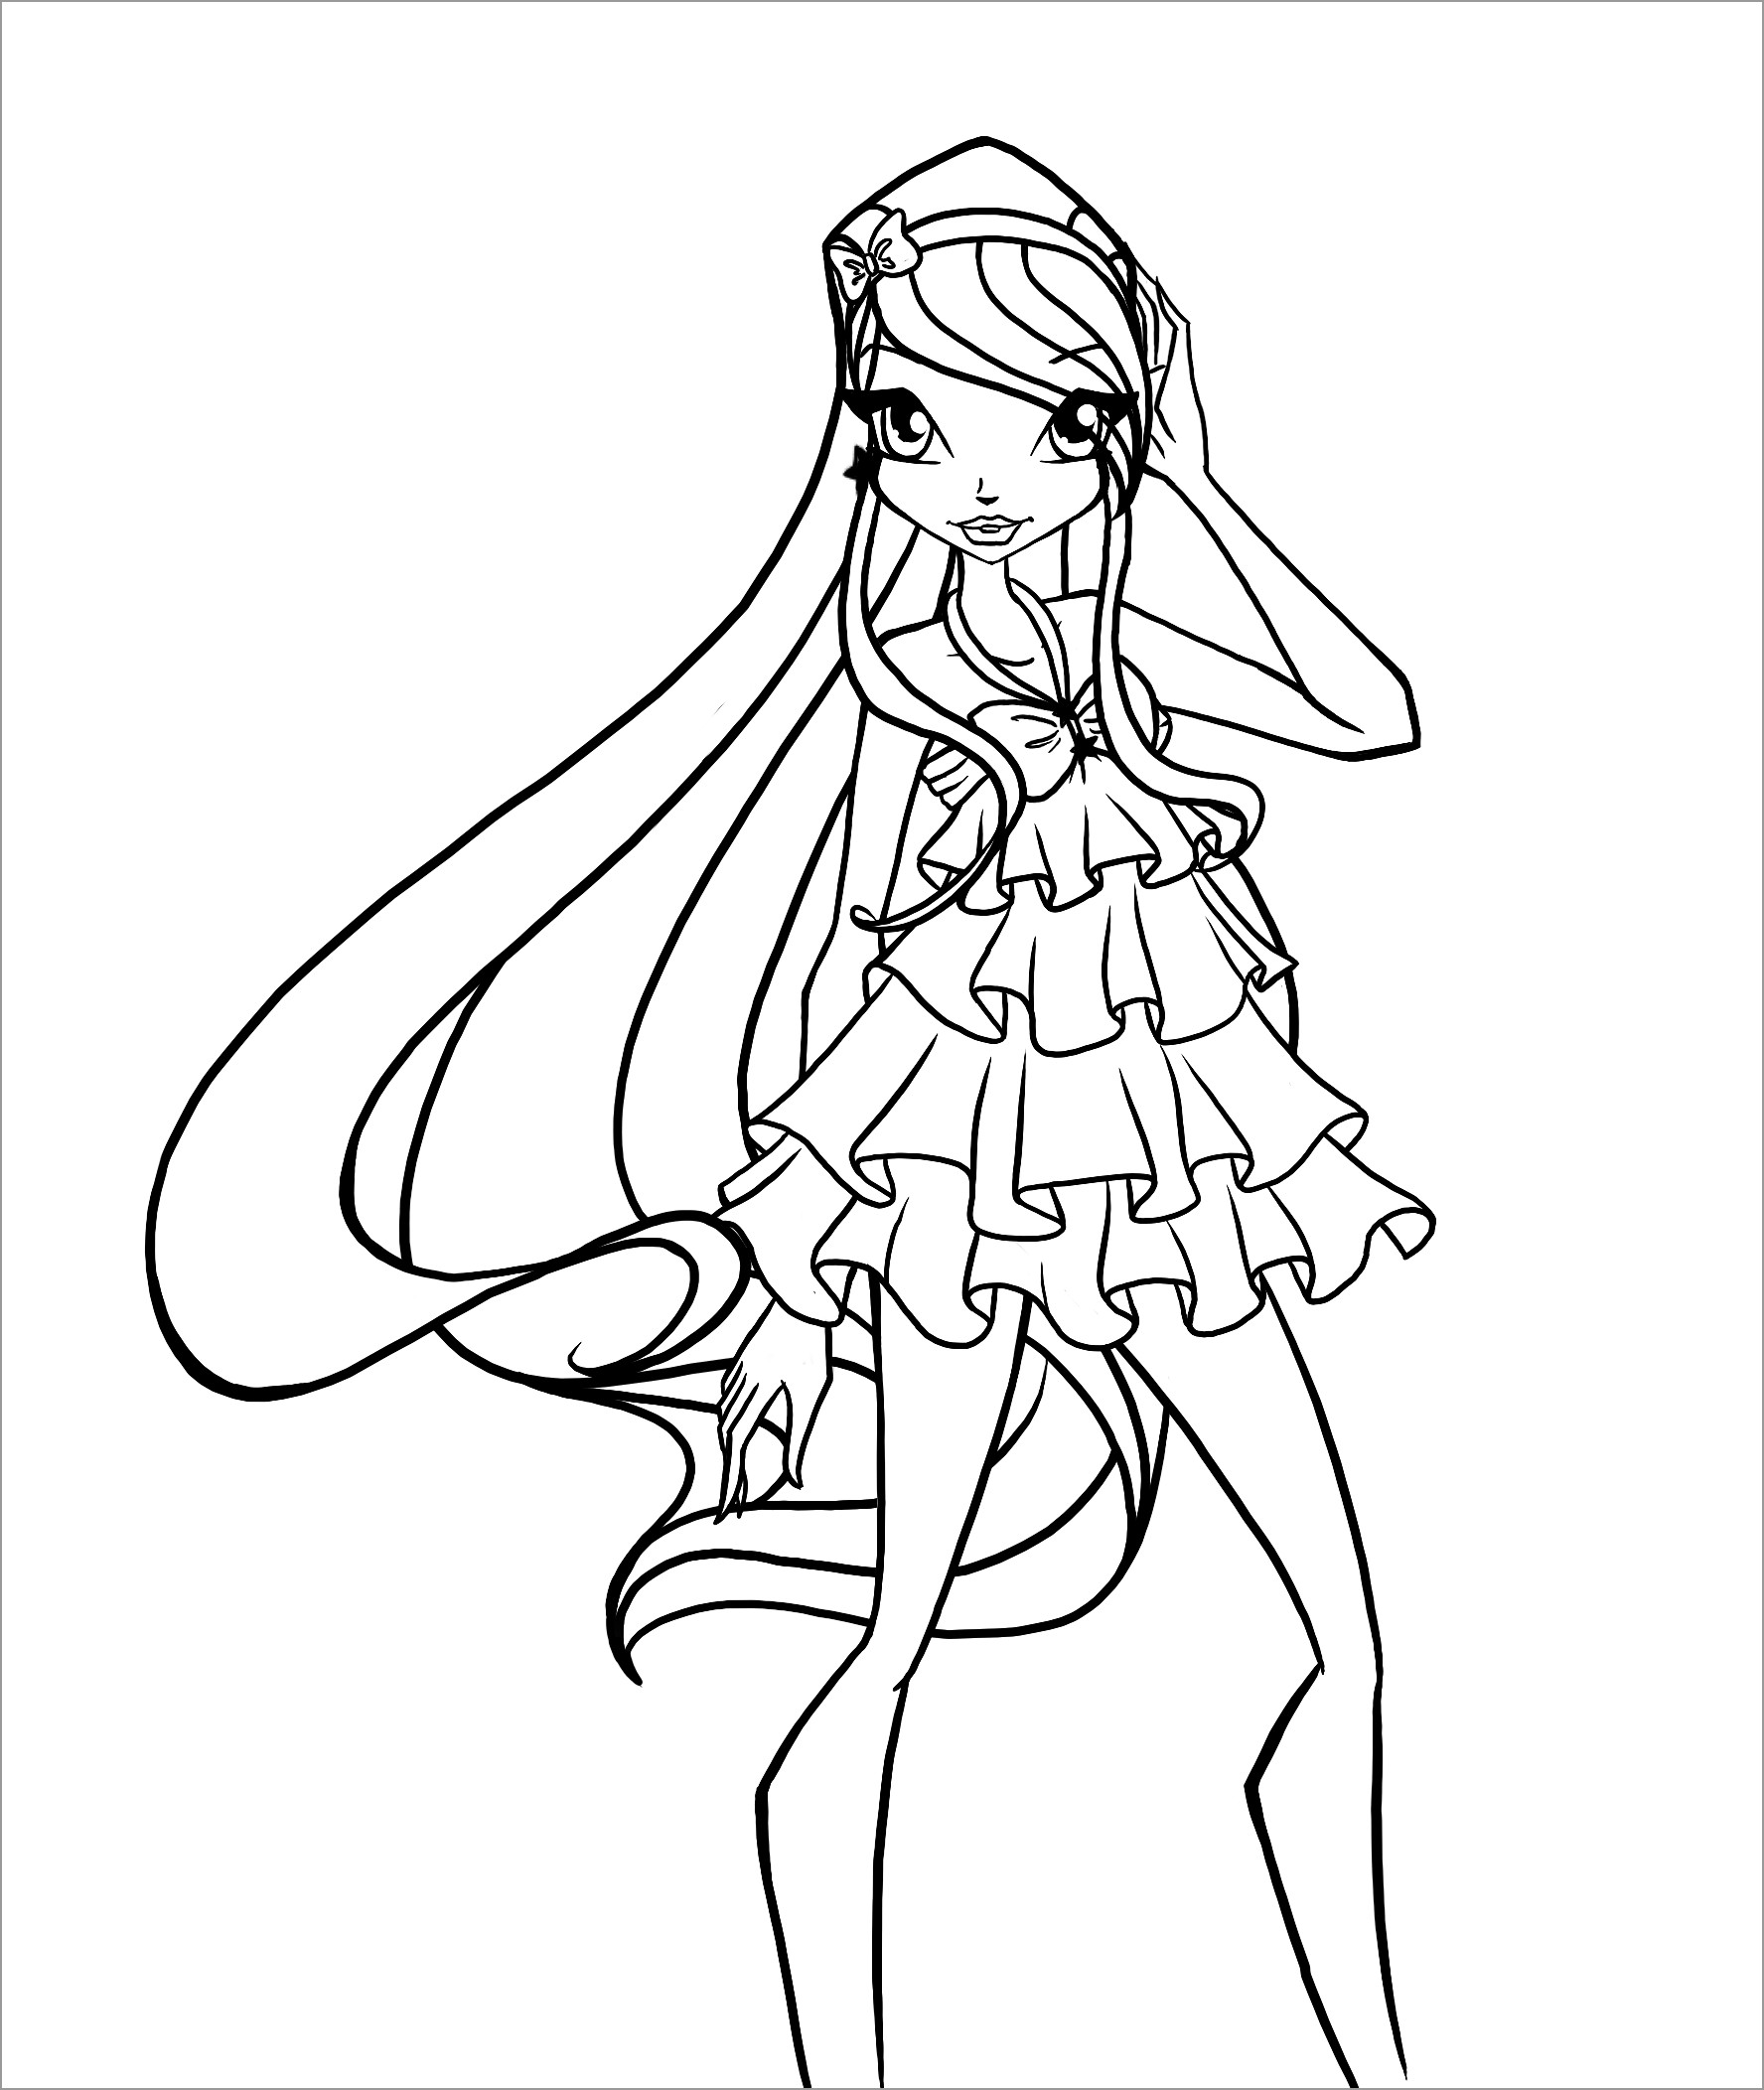 Winx Coloring Pages to Print